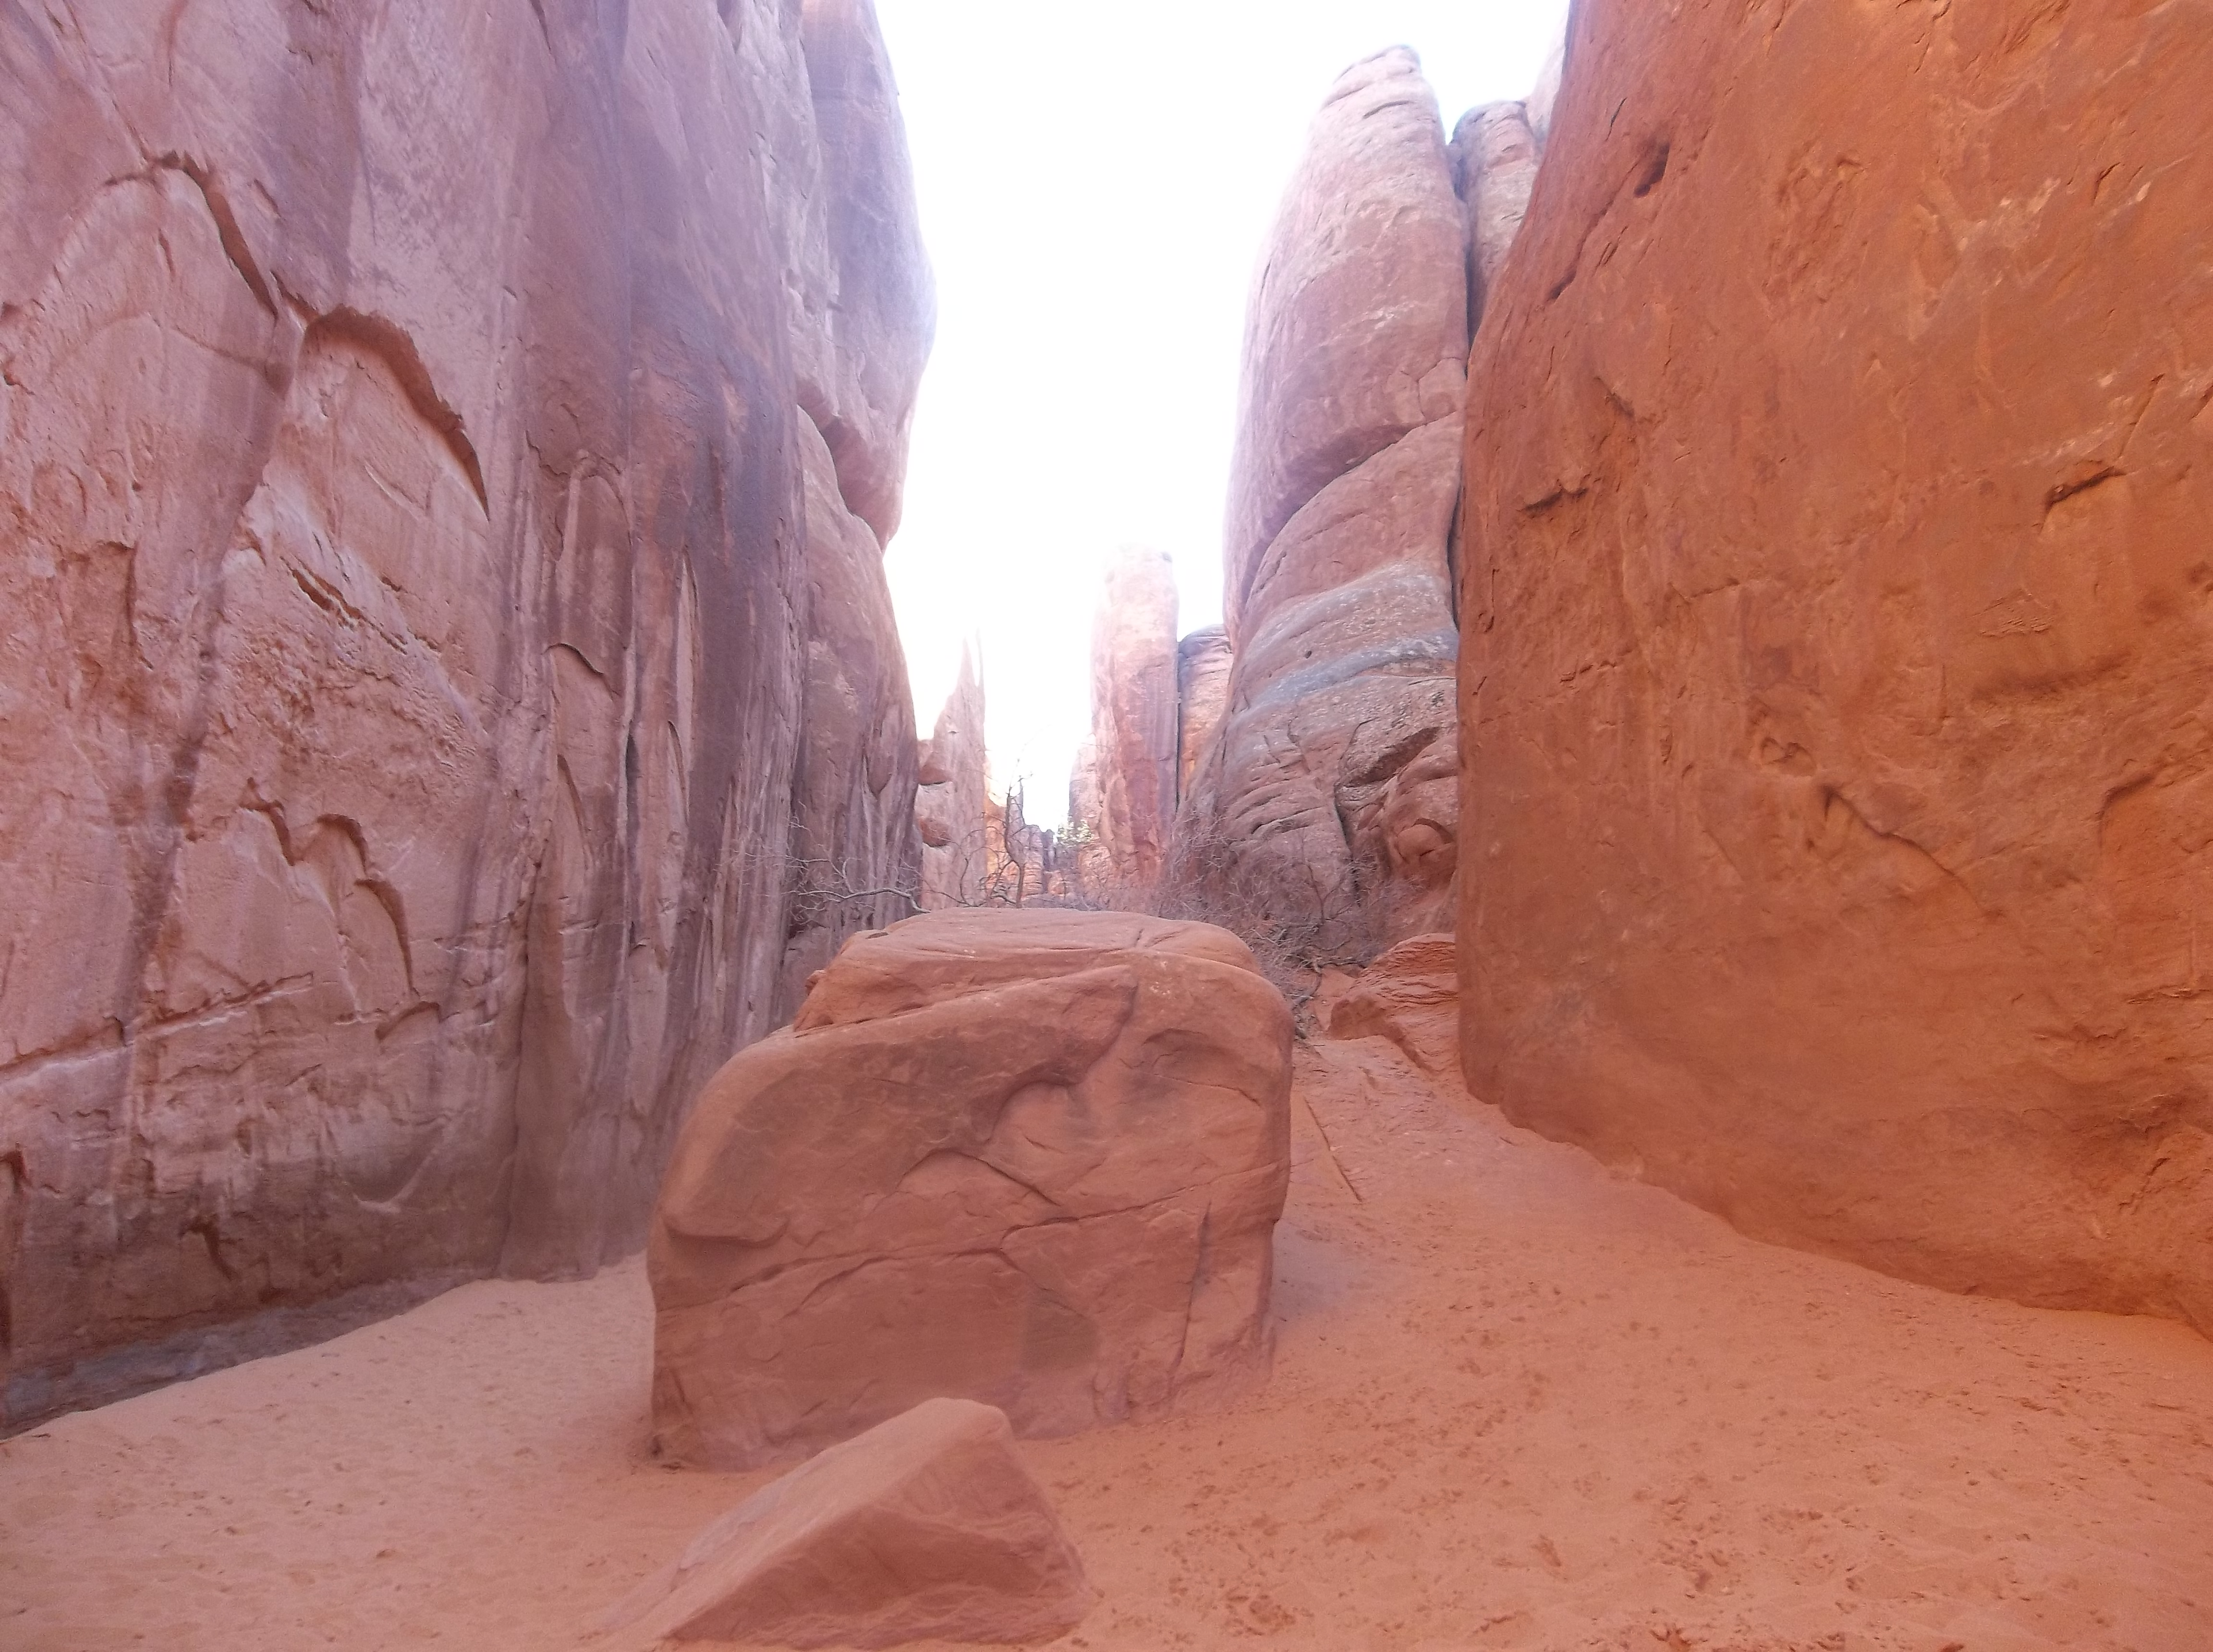 The surface of Mars? No, just a red sandstone canyon in Arches National Park.